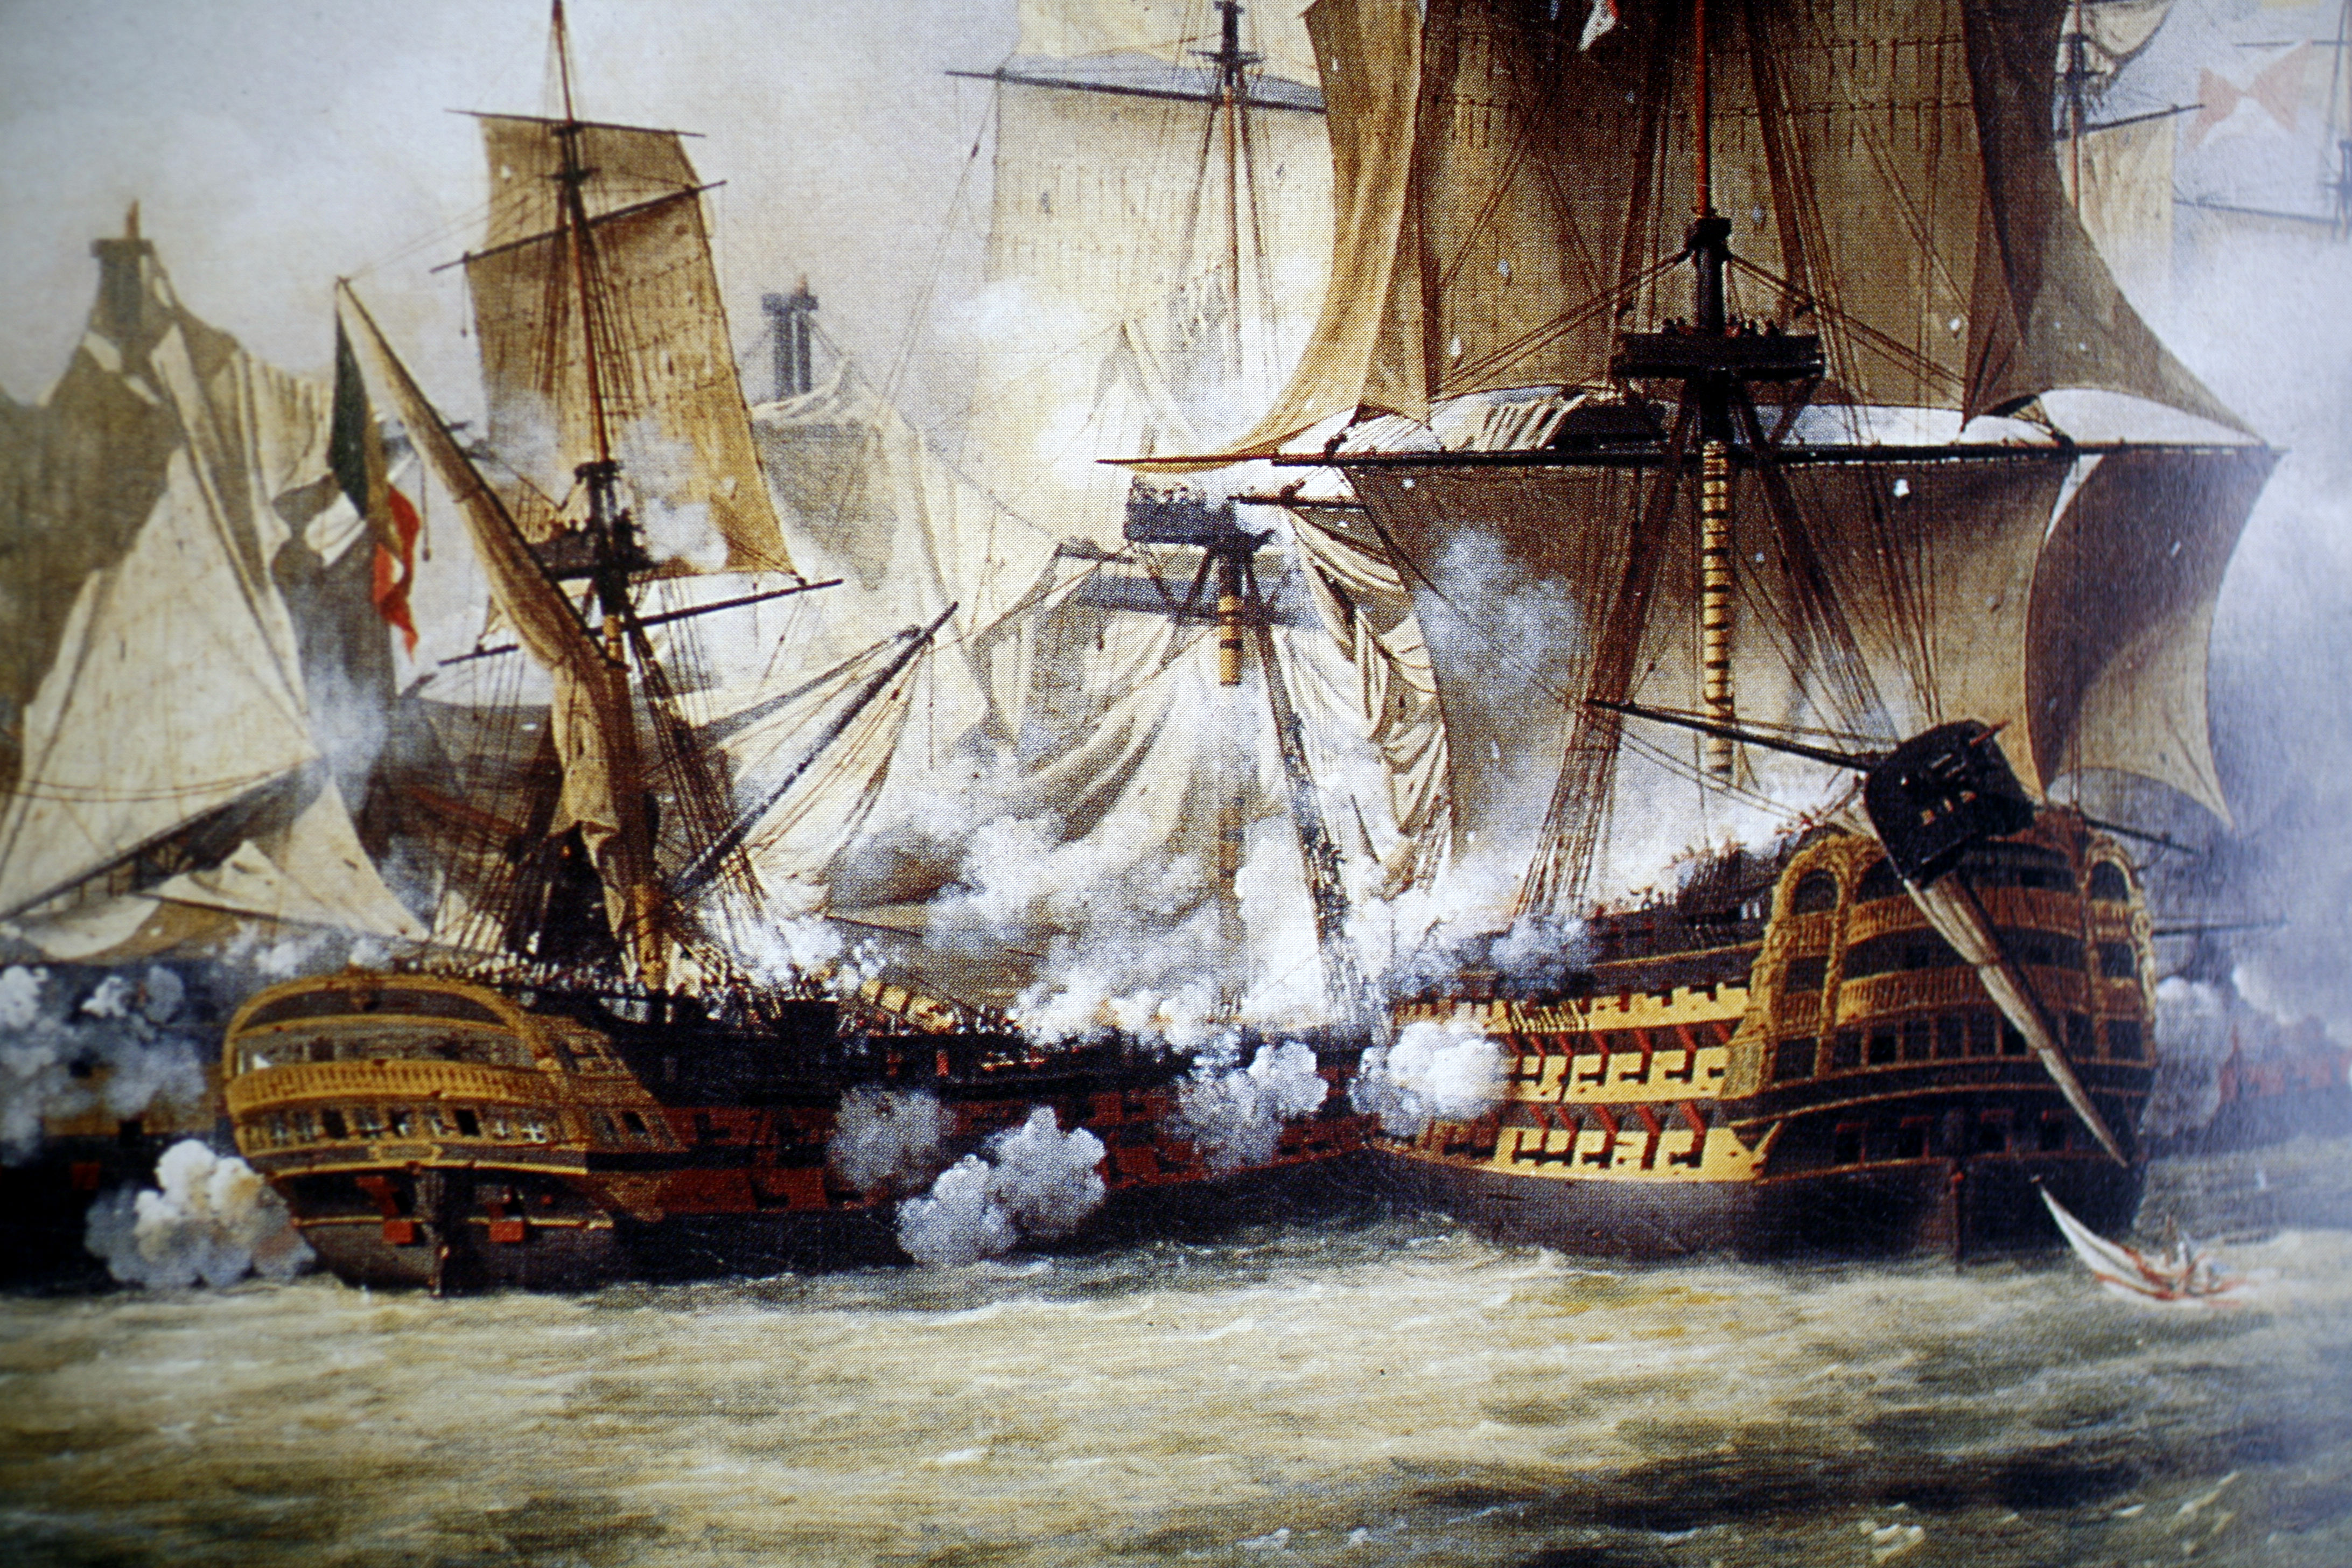 The Battle Between The Spanish Armada And The British Fleet In 1588